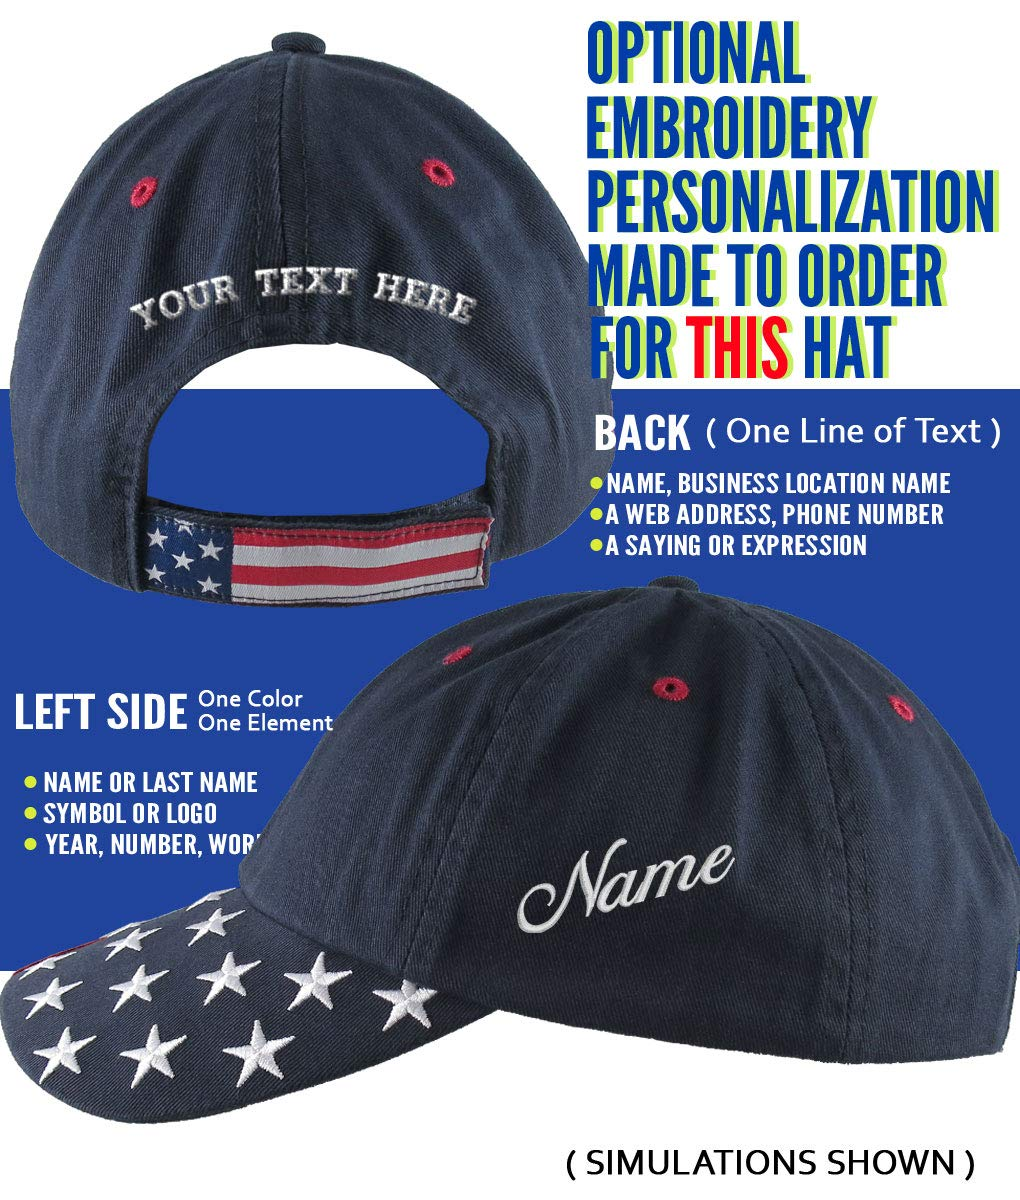 50221bc2 Amazon.com: NYSE Hat Dow 30000 Stock Broker Custom Embroidery Adjustable  Navy Blue Unstructured Stars and Stripes Baseball Cap + Personalization  Options: ...